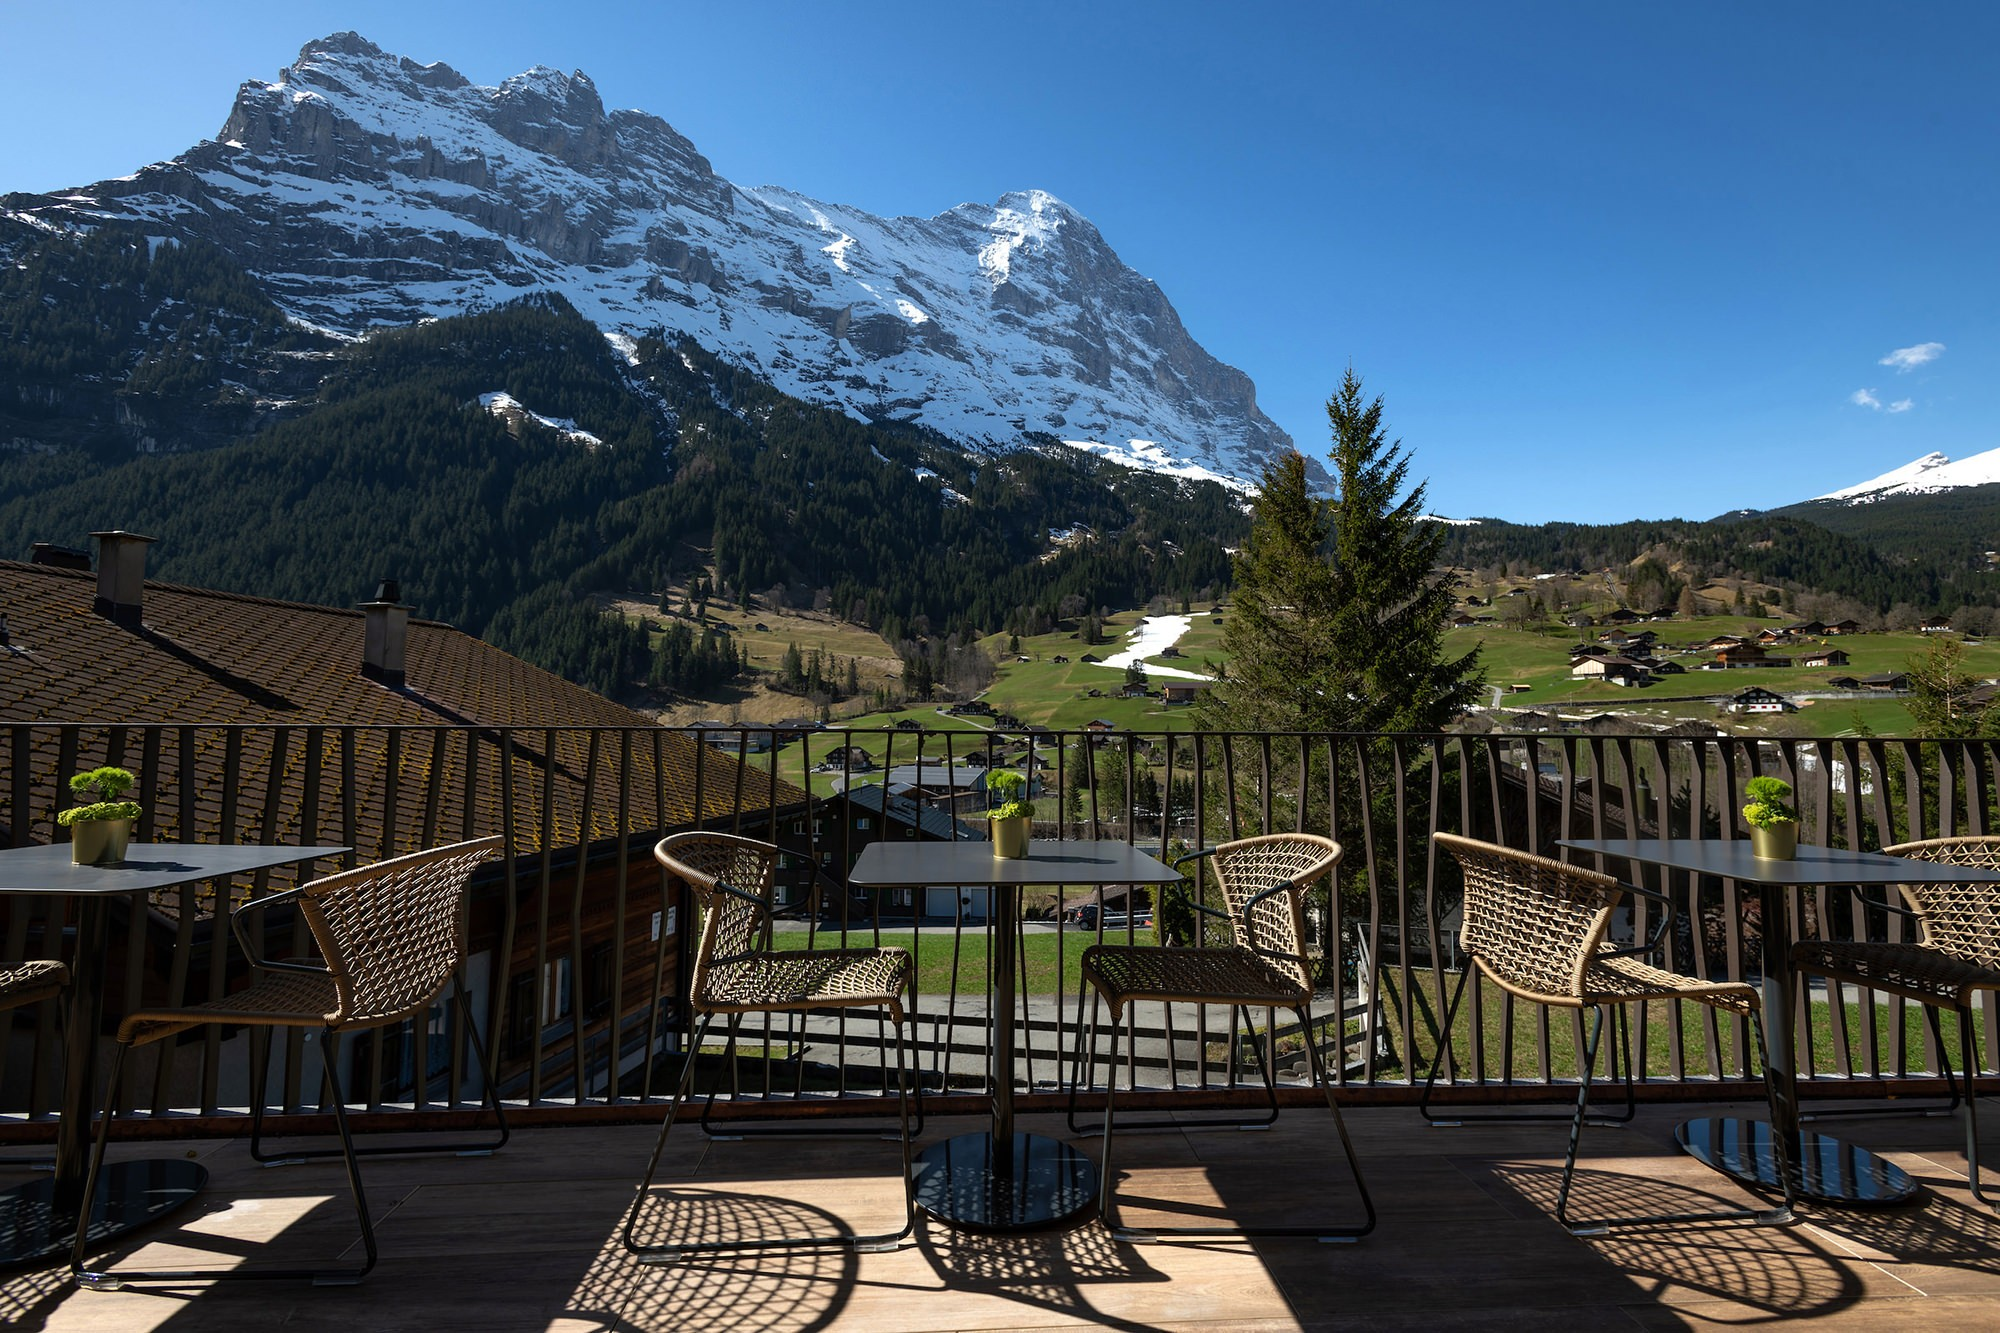 Restaurant at Boutique Hotel and Restaurant Glacier Grindelwald